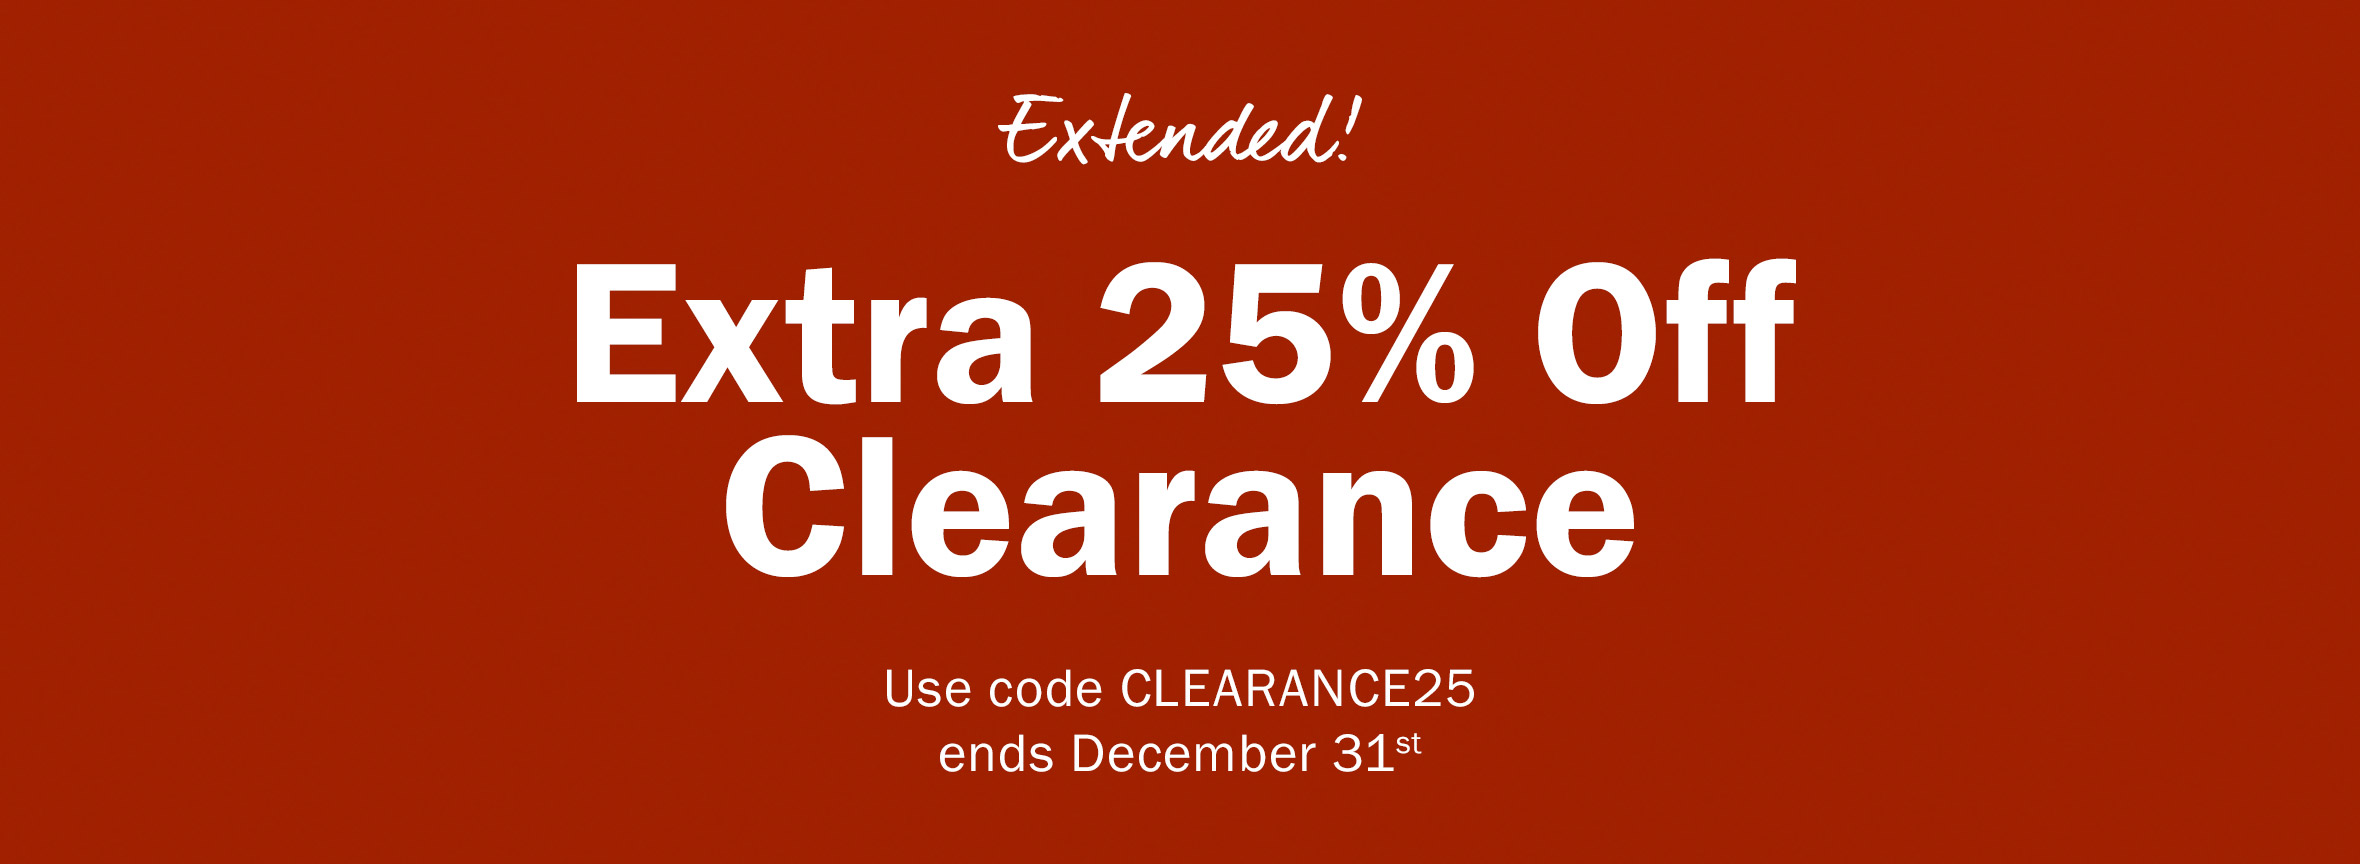 Extended! Extra 25% Off Clearance. Use code CLEARANCE25. ends December 31st